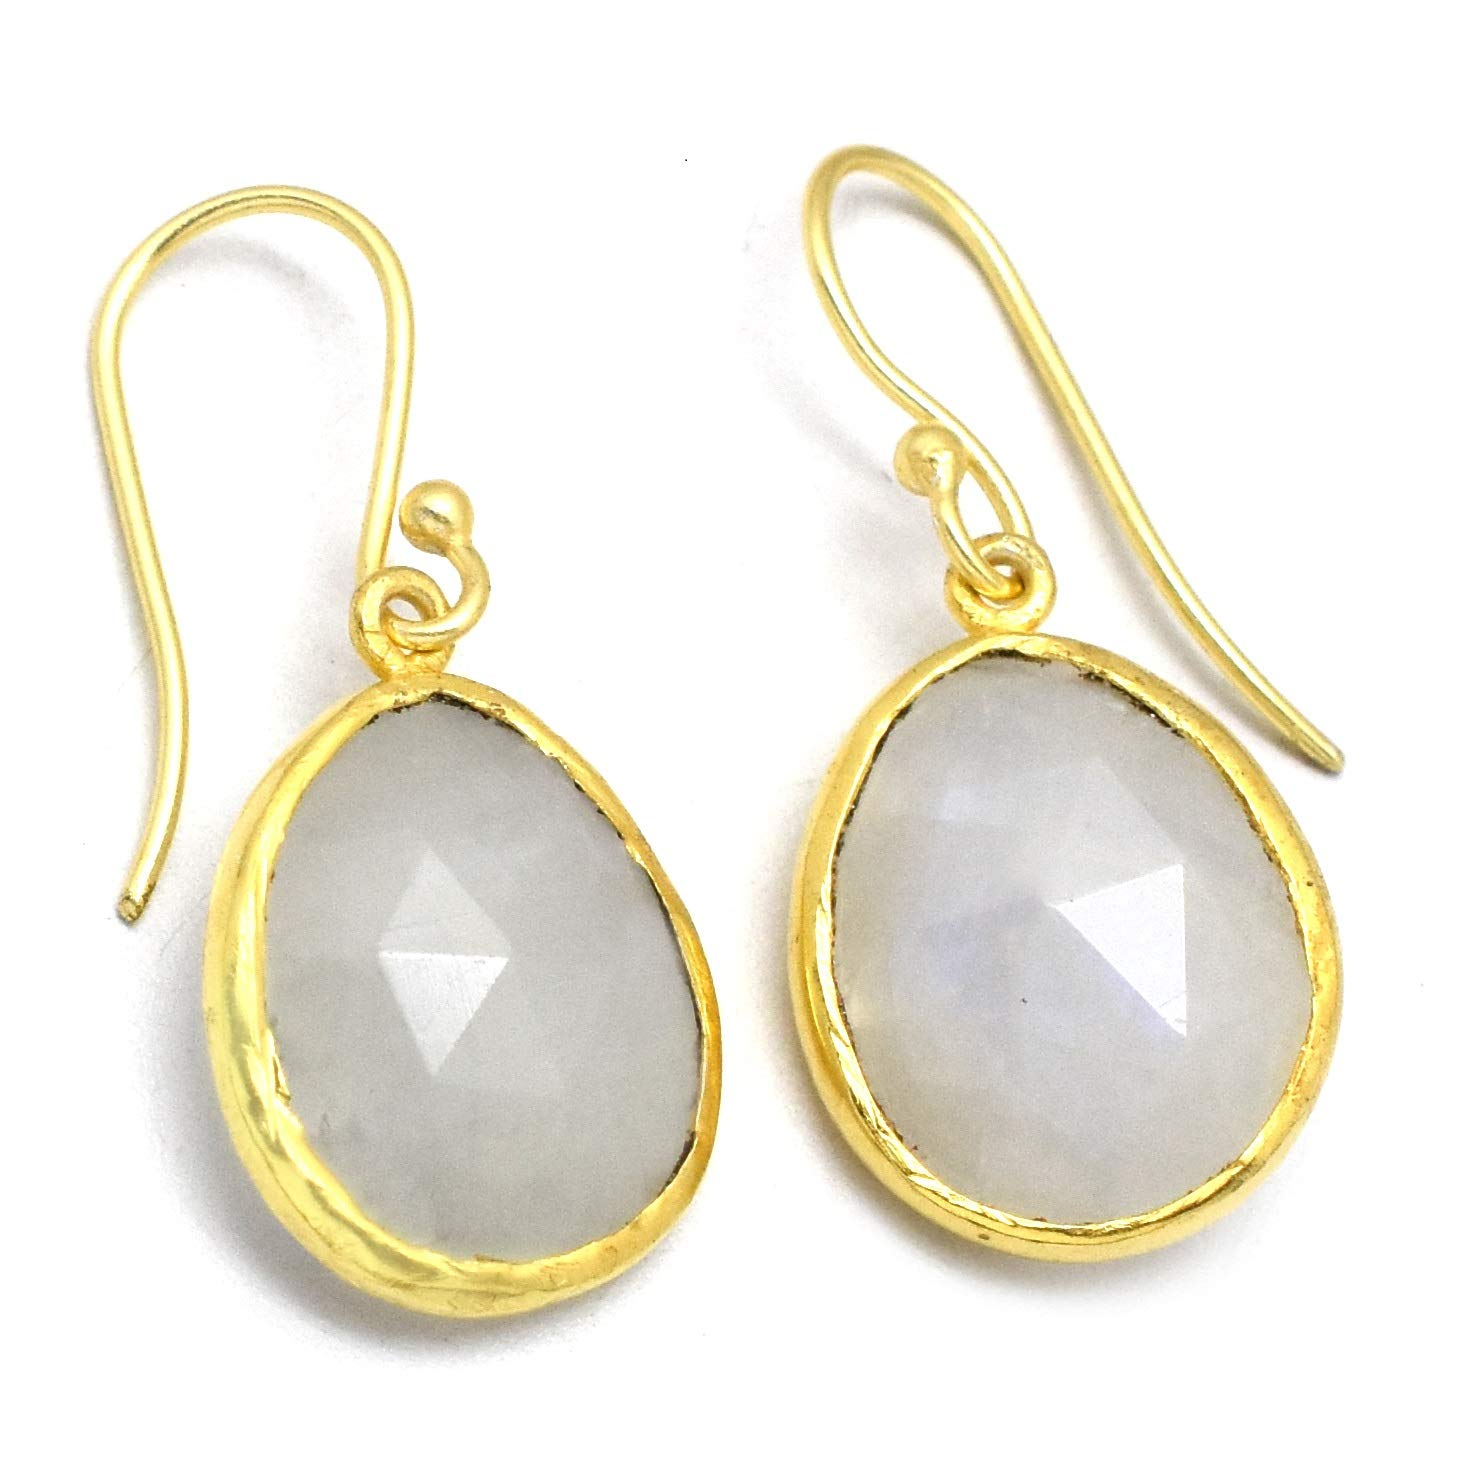 The V Collection earrings yellow gold plated rainbow stone dangling earrings for women and girls